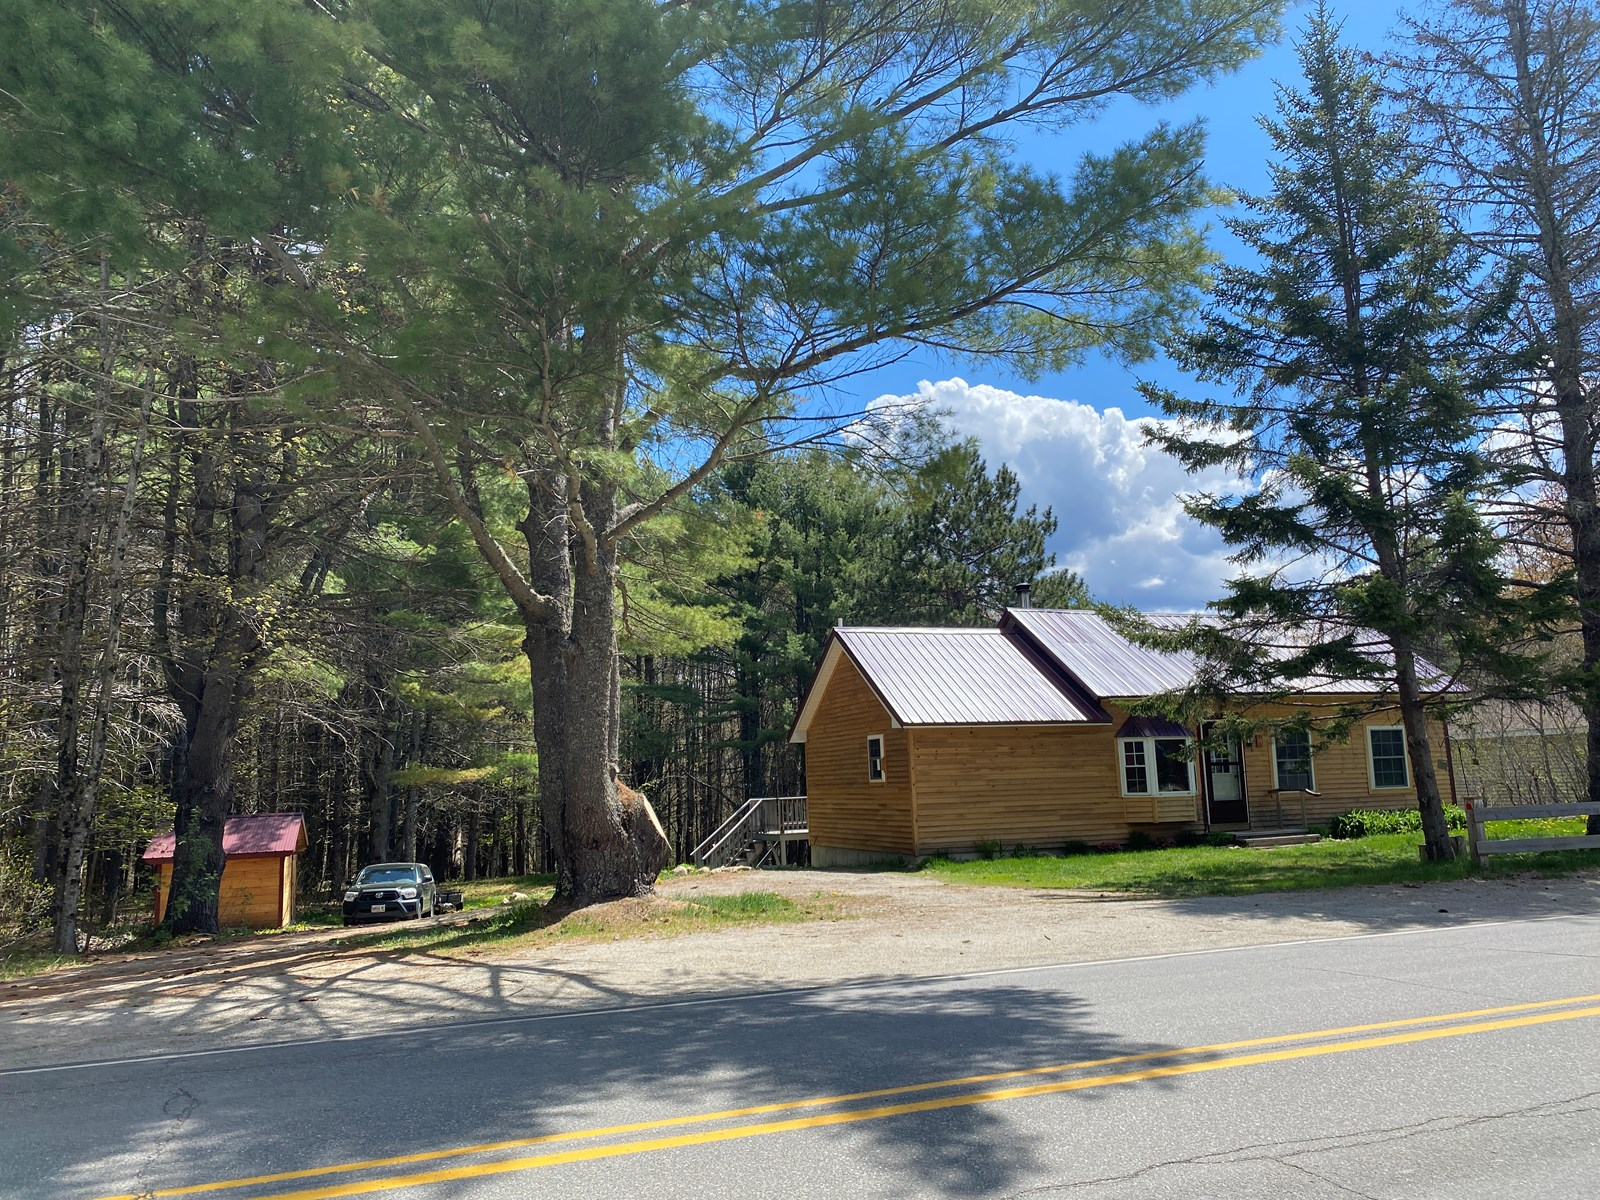 Home for Sale in Enfield, Maine